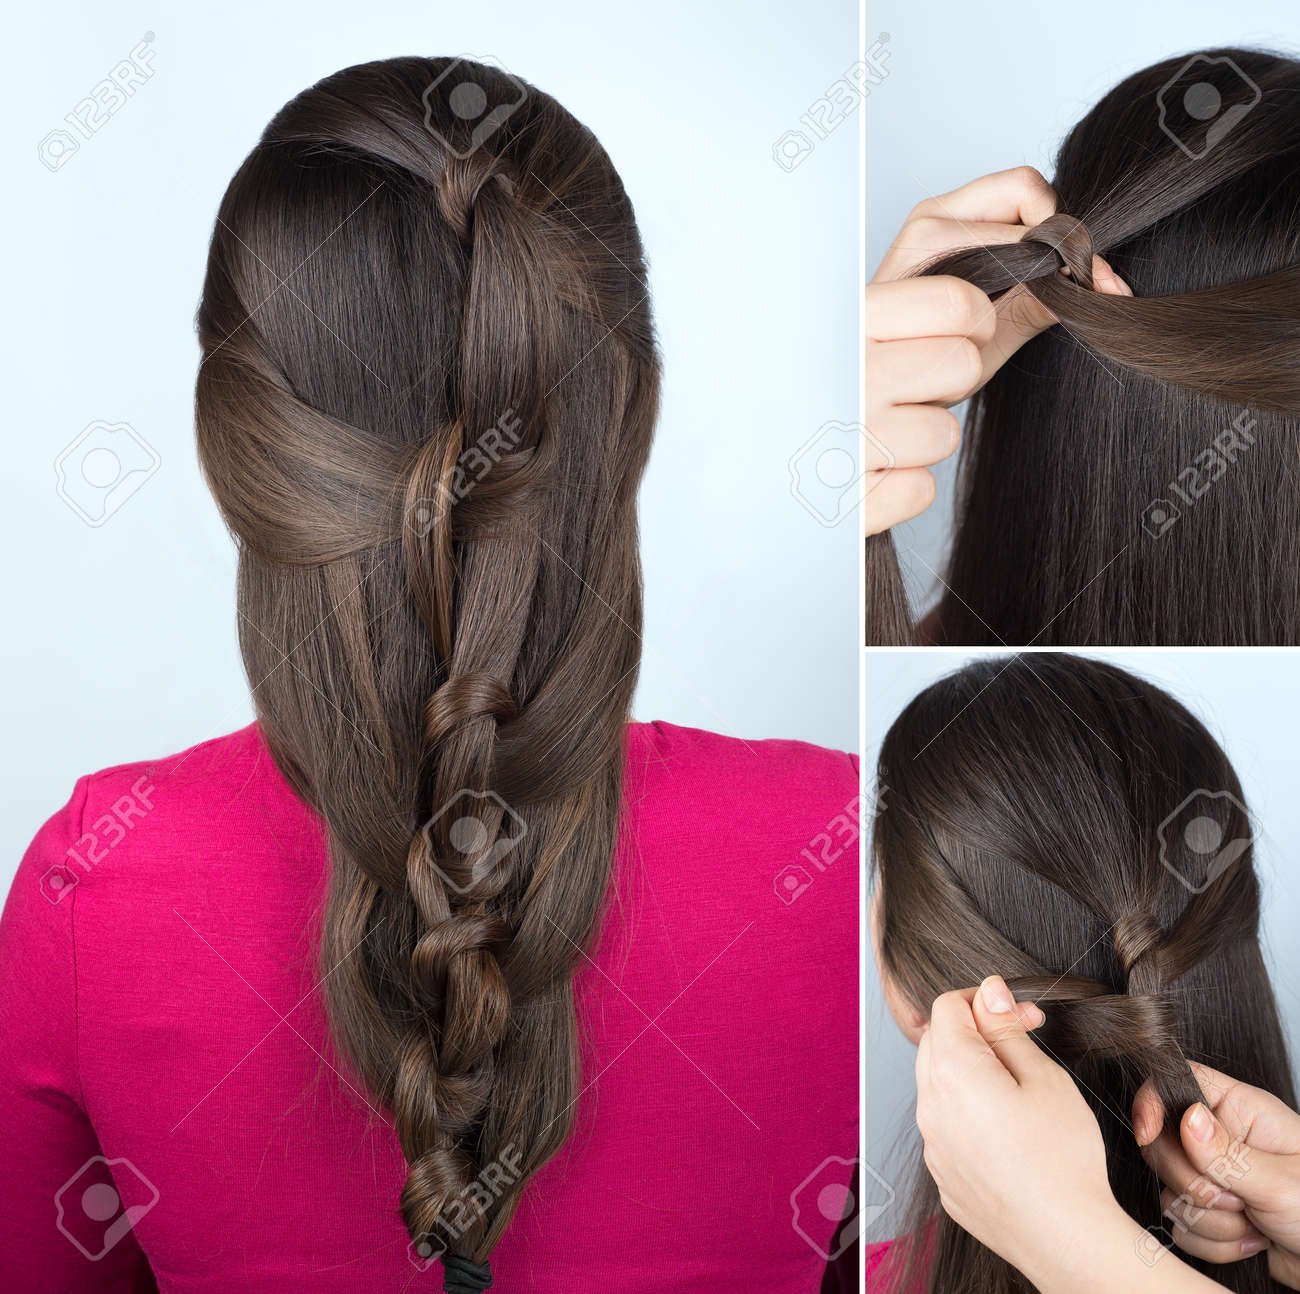 simple hairstyle twisted plait tutorial. Easy hairstyle for long hair. Hairstyle of twisted knots. Hairstyle tutorial step by step - 66659560